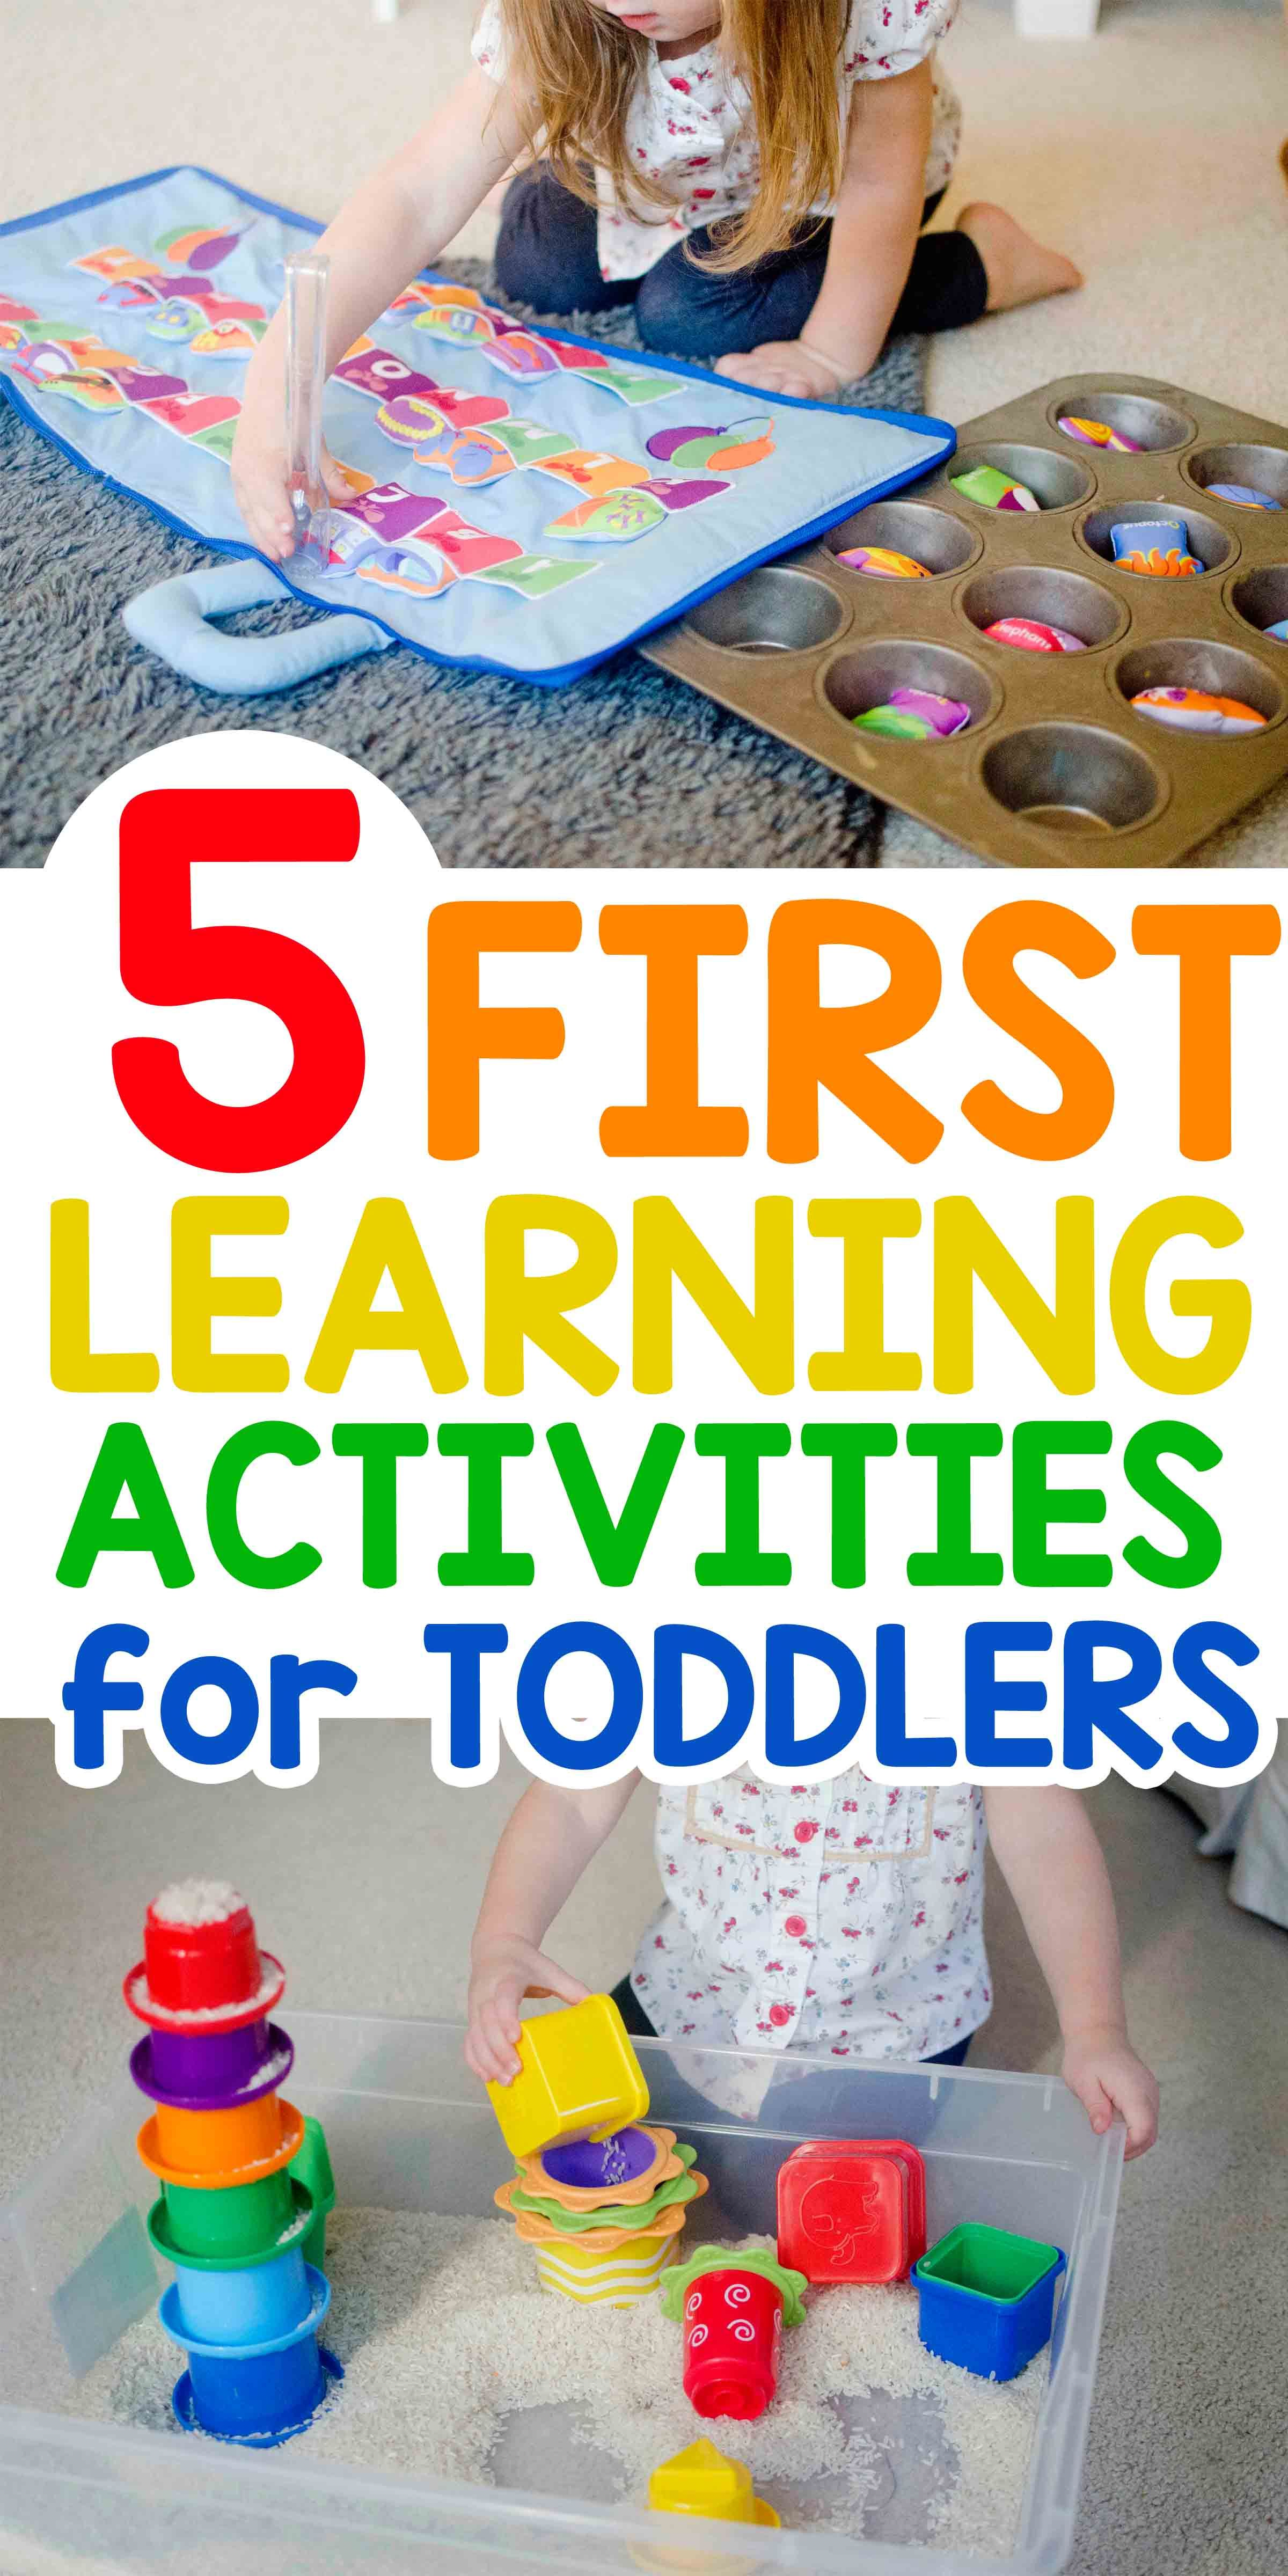 5 First Learning Activities For Toddlers